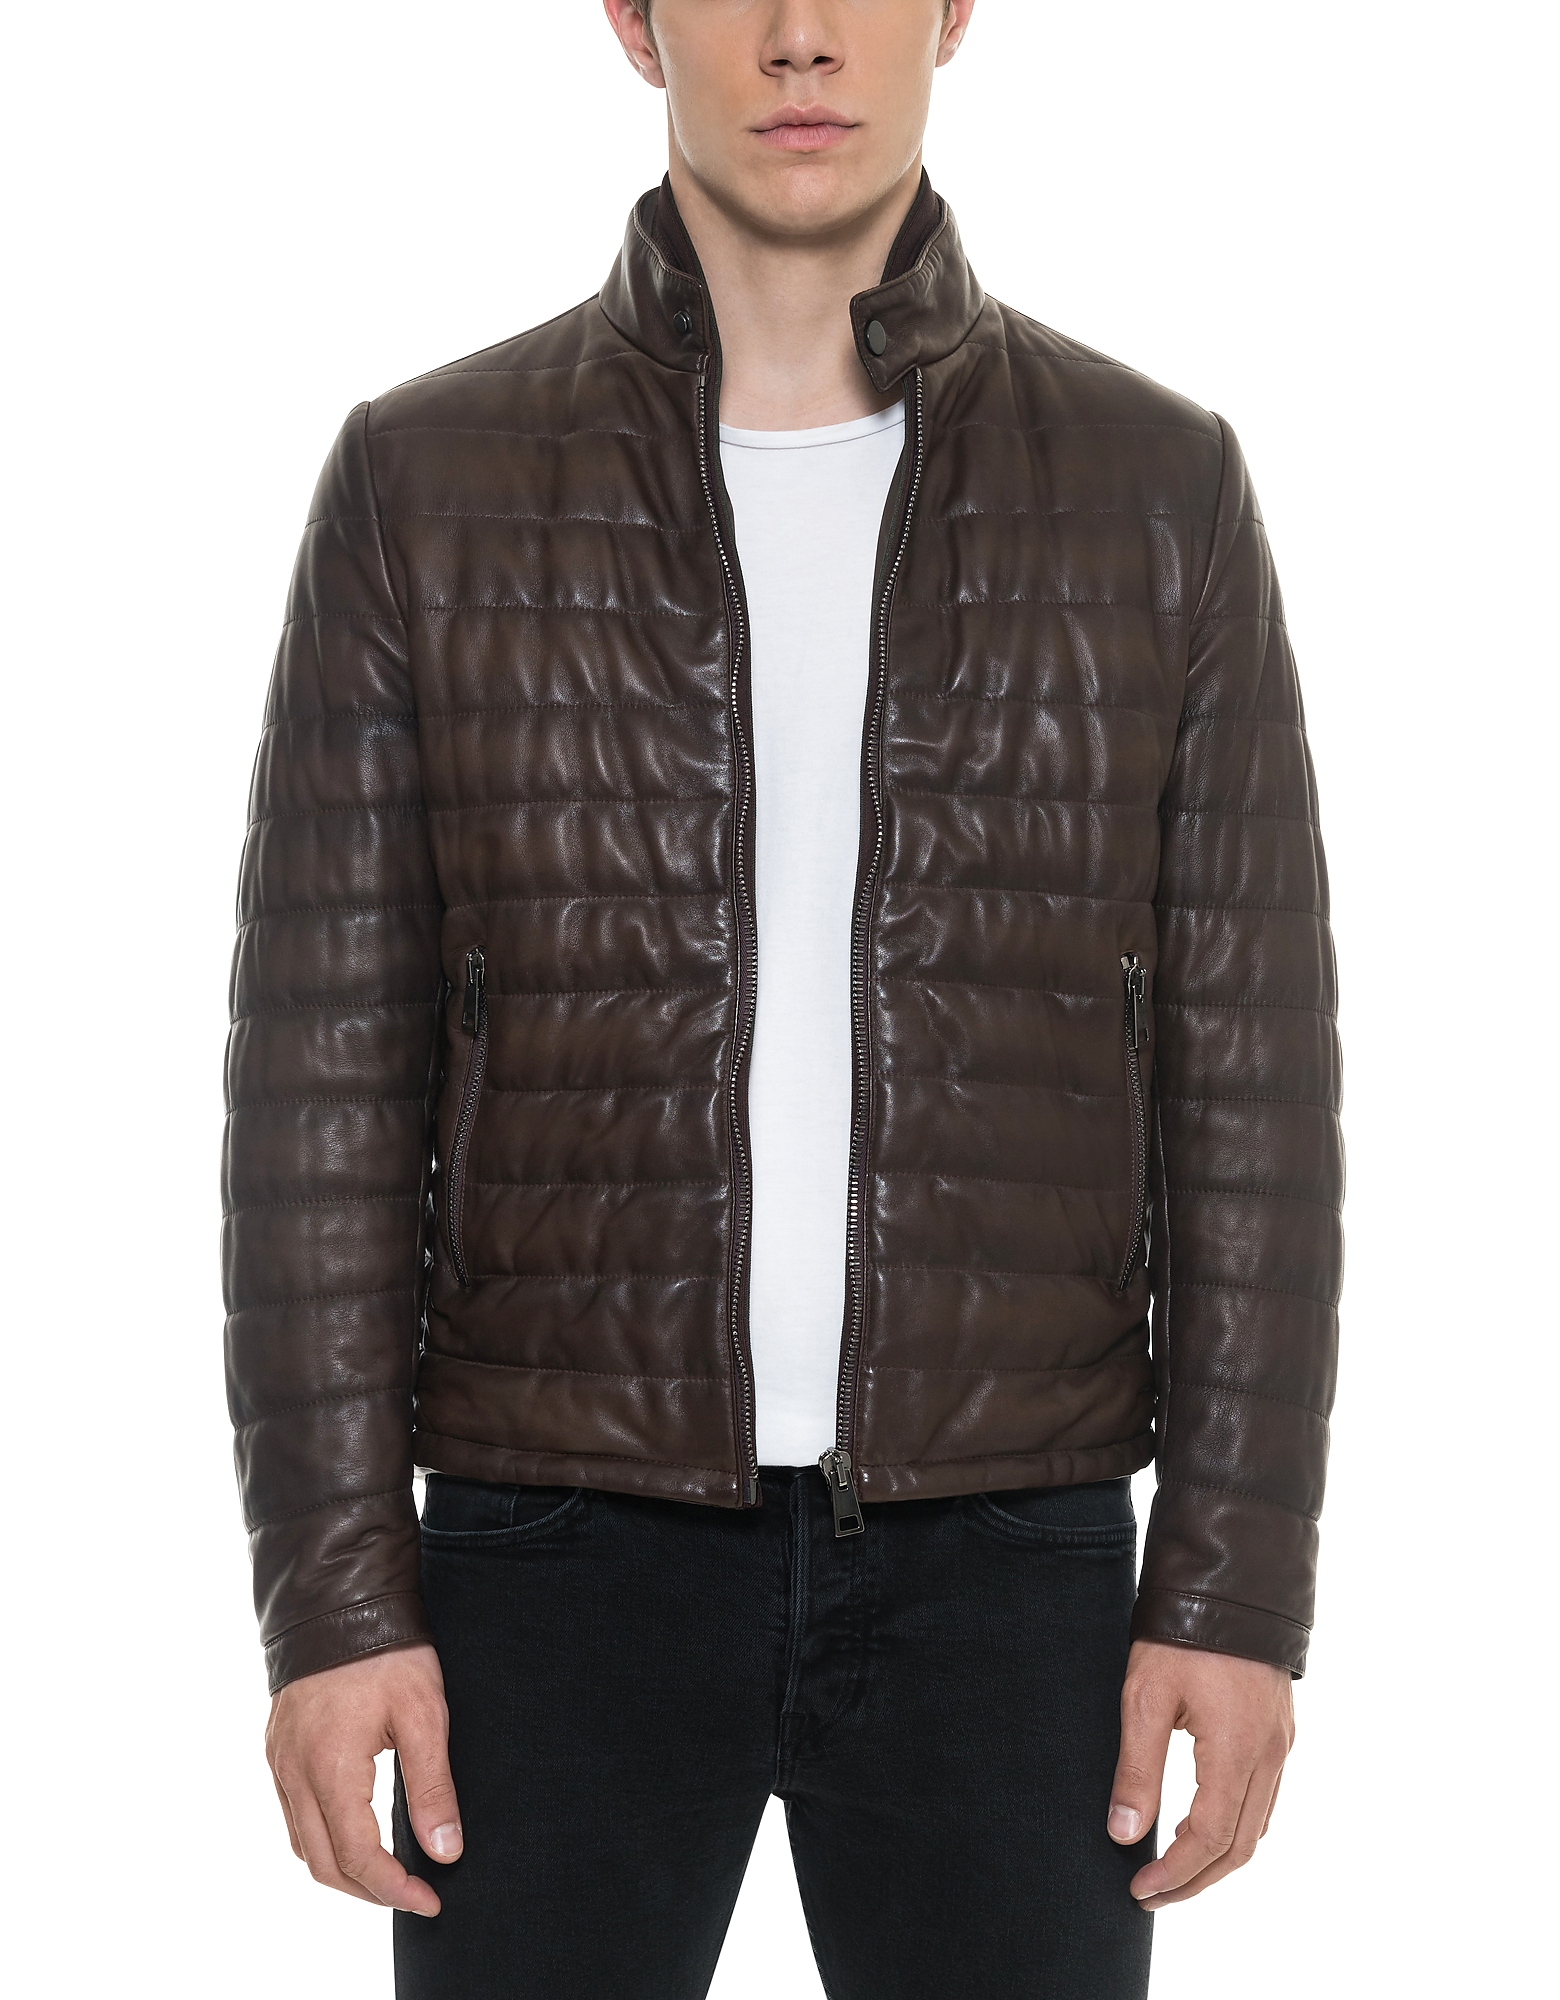 Forzieri Leather Jackets, Dark Brown Quilted Leather Men's Jacket